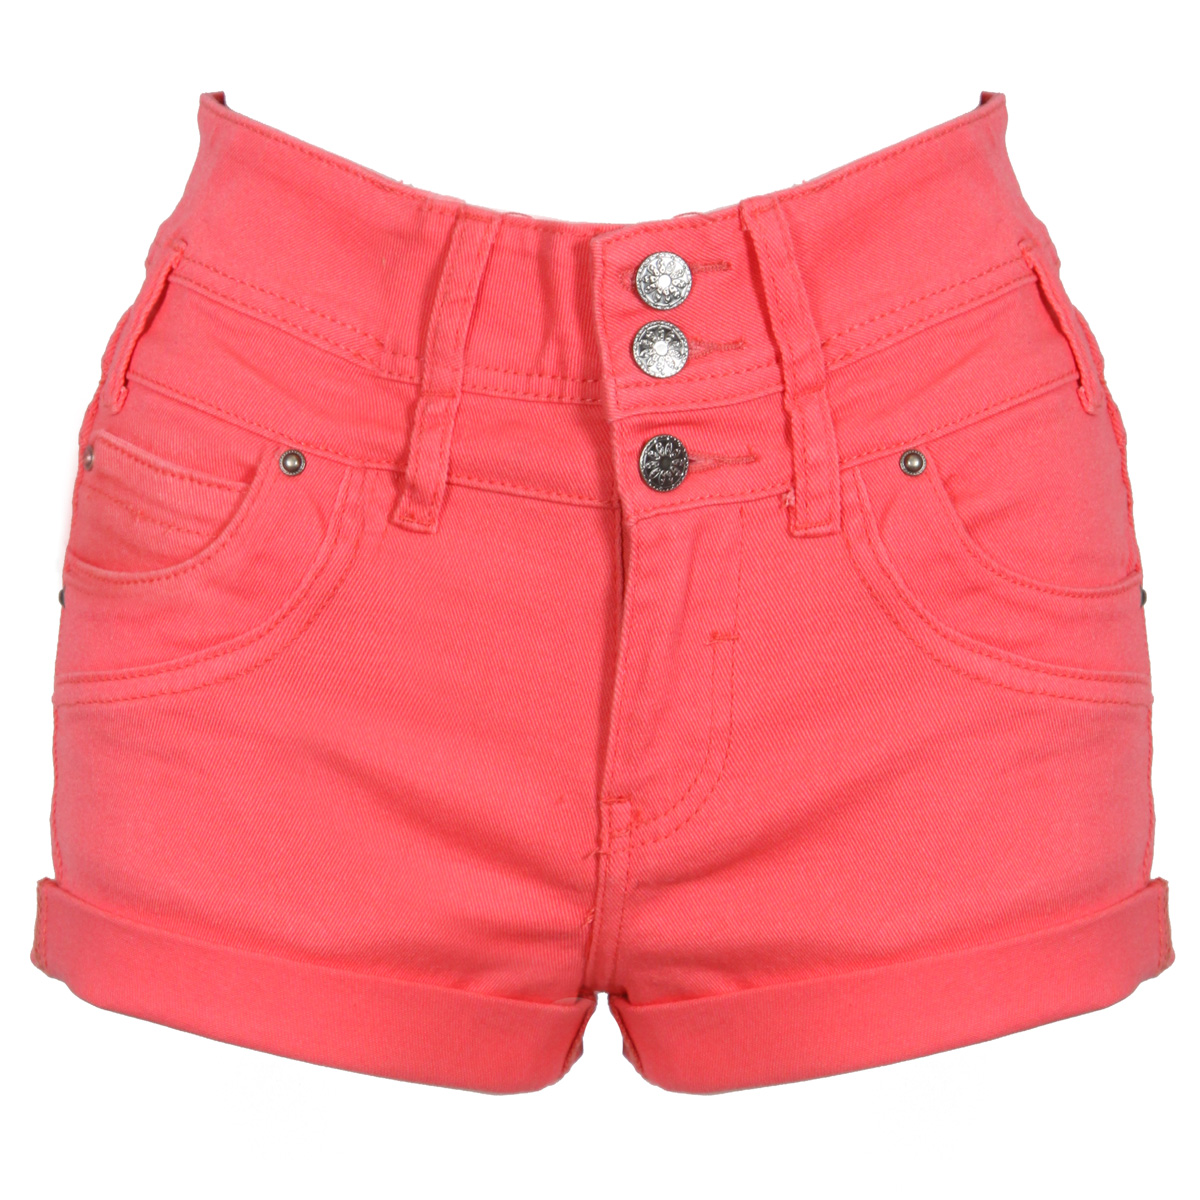 NEW WOMENS CORAL PINK DENIM SHORTS HIGH WAIST HOT PANTS HOTPANTS LADIES CASUAL Preview